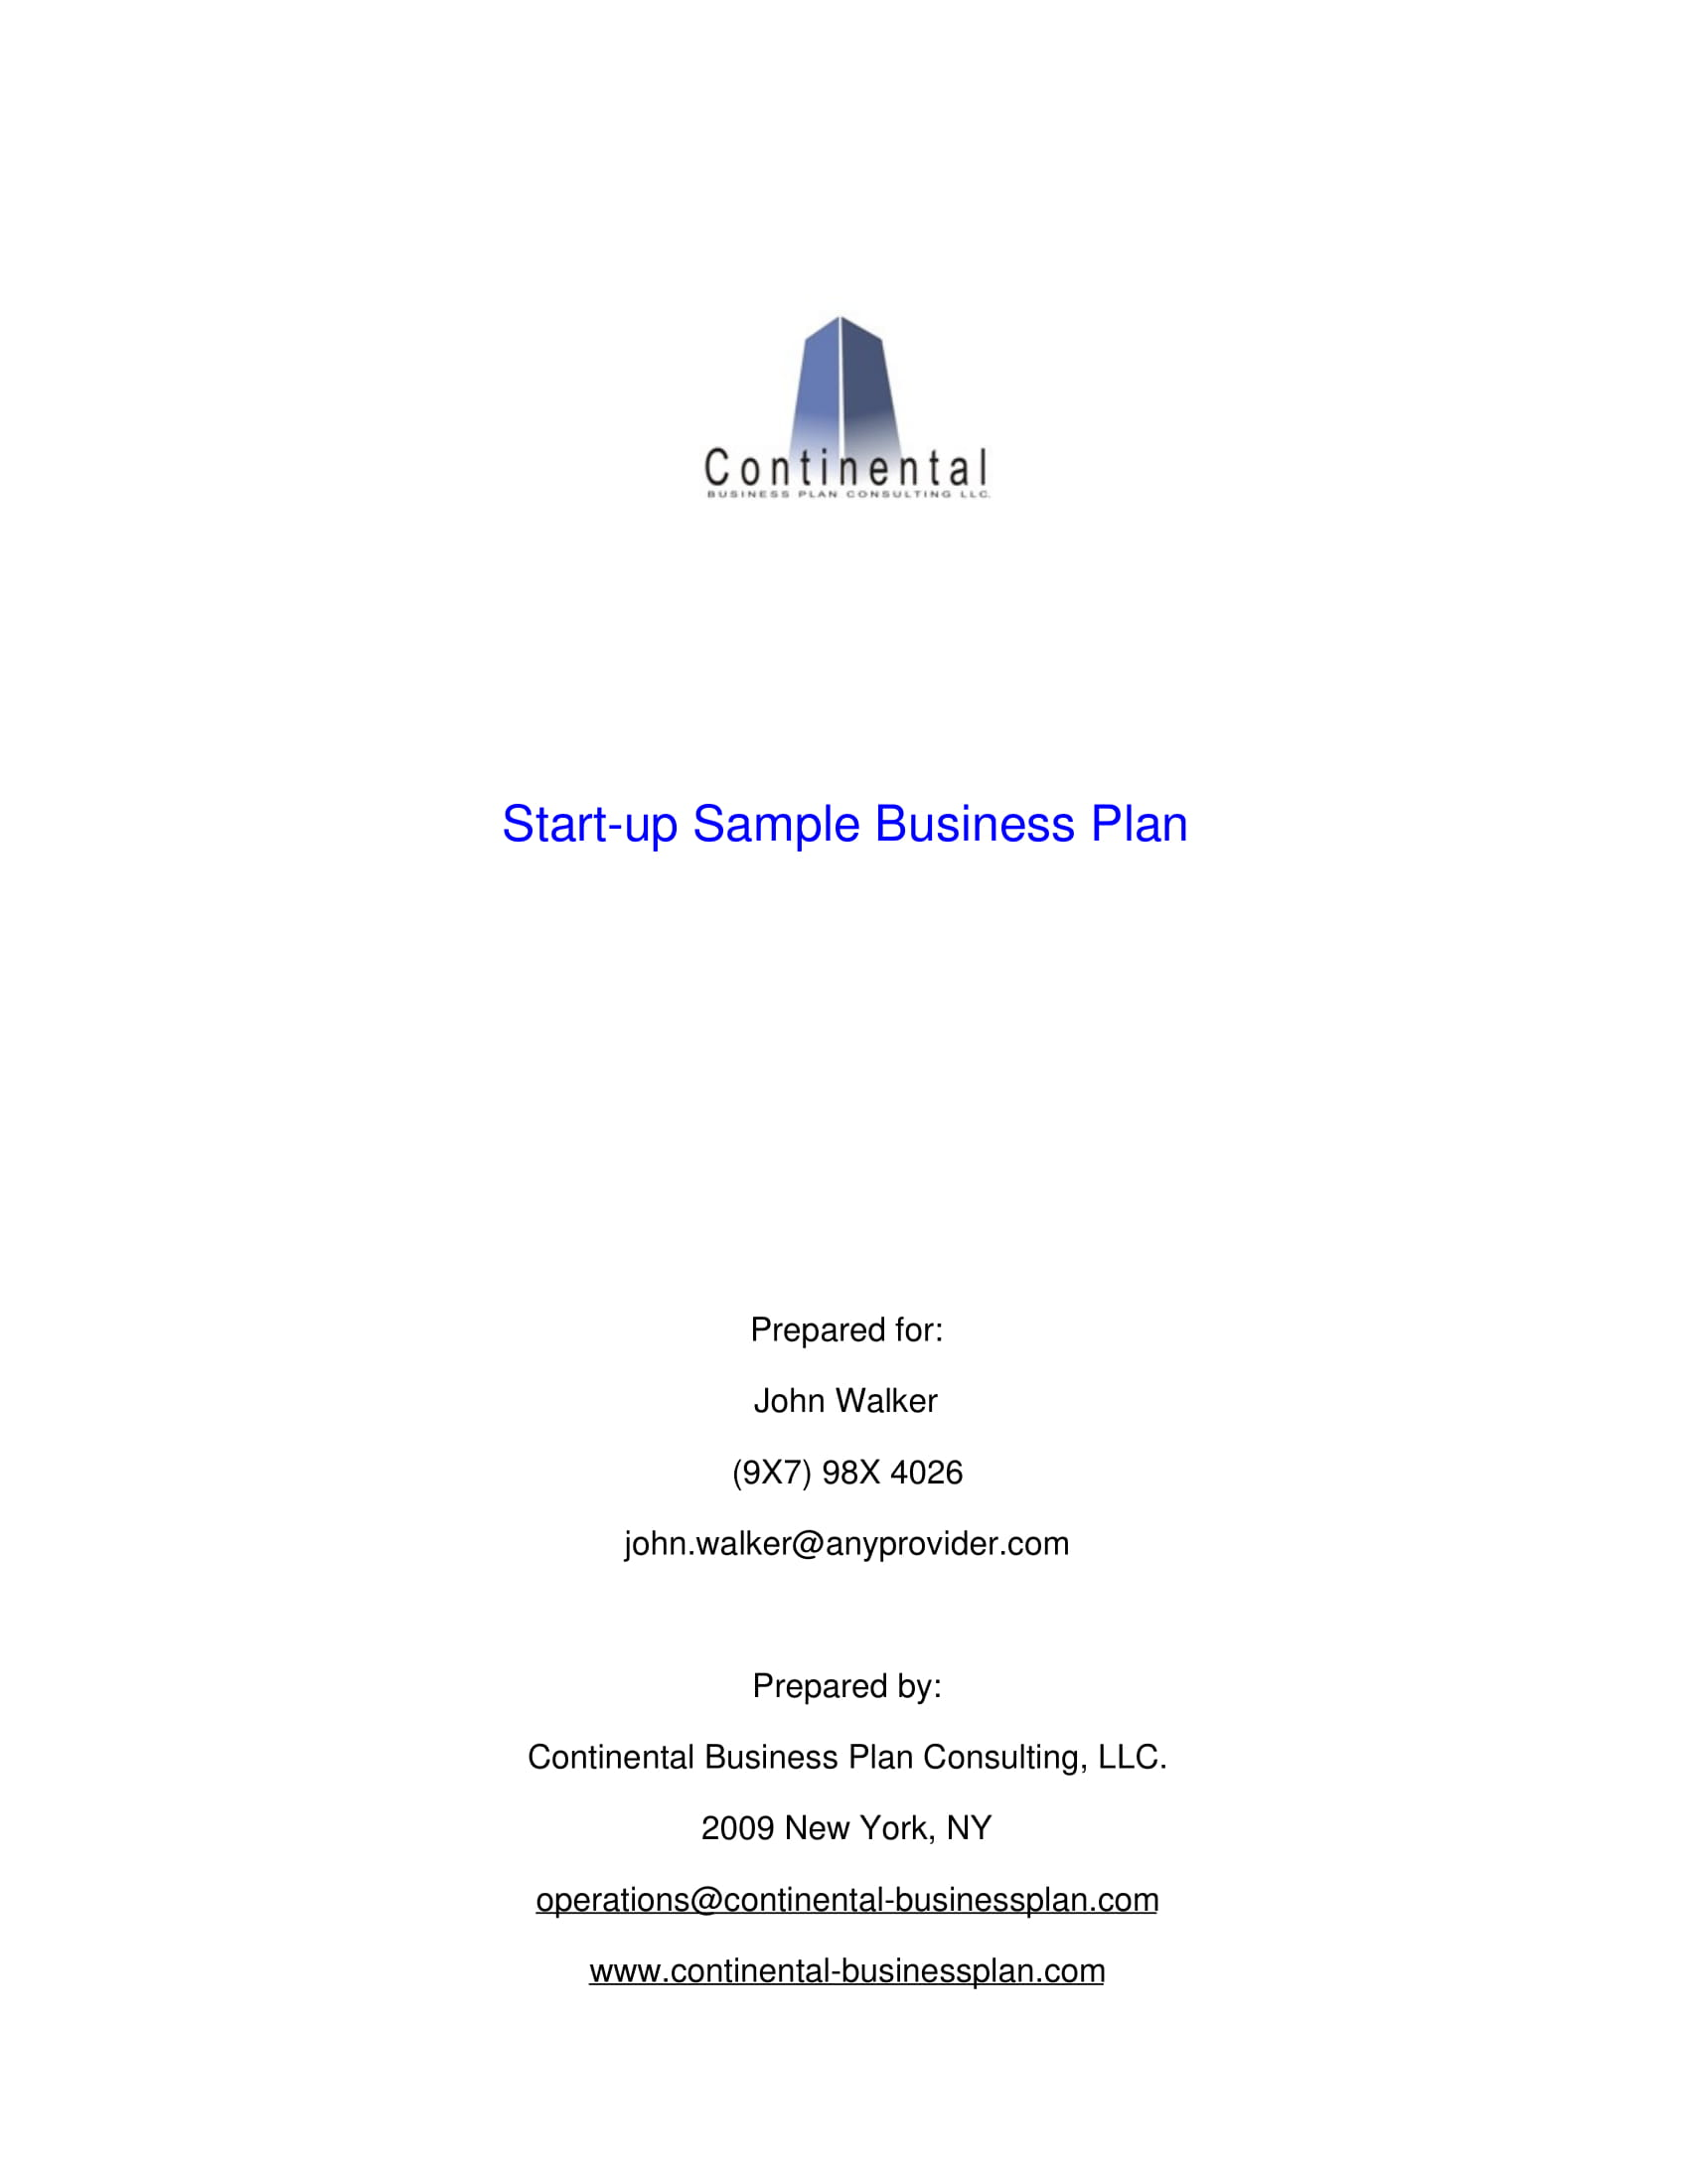 start up business plan for a juice bar and other businesses example 01